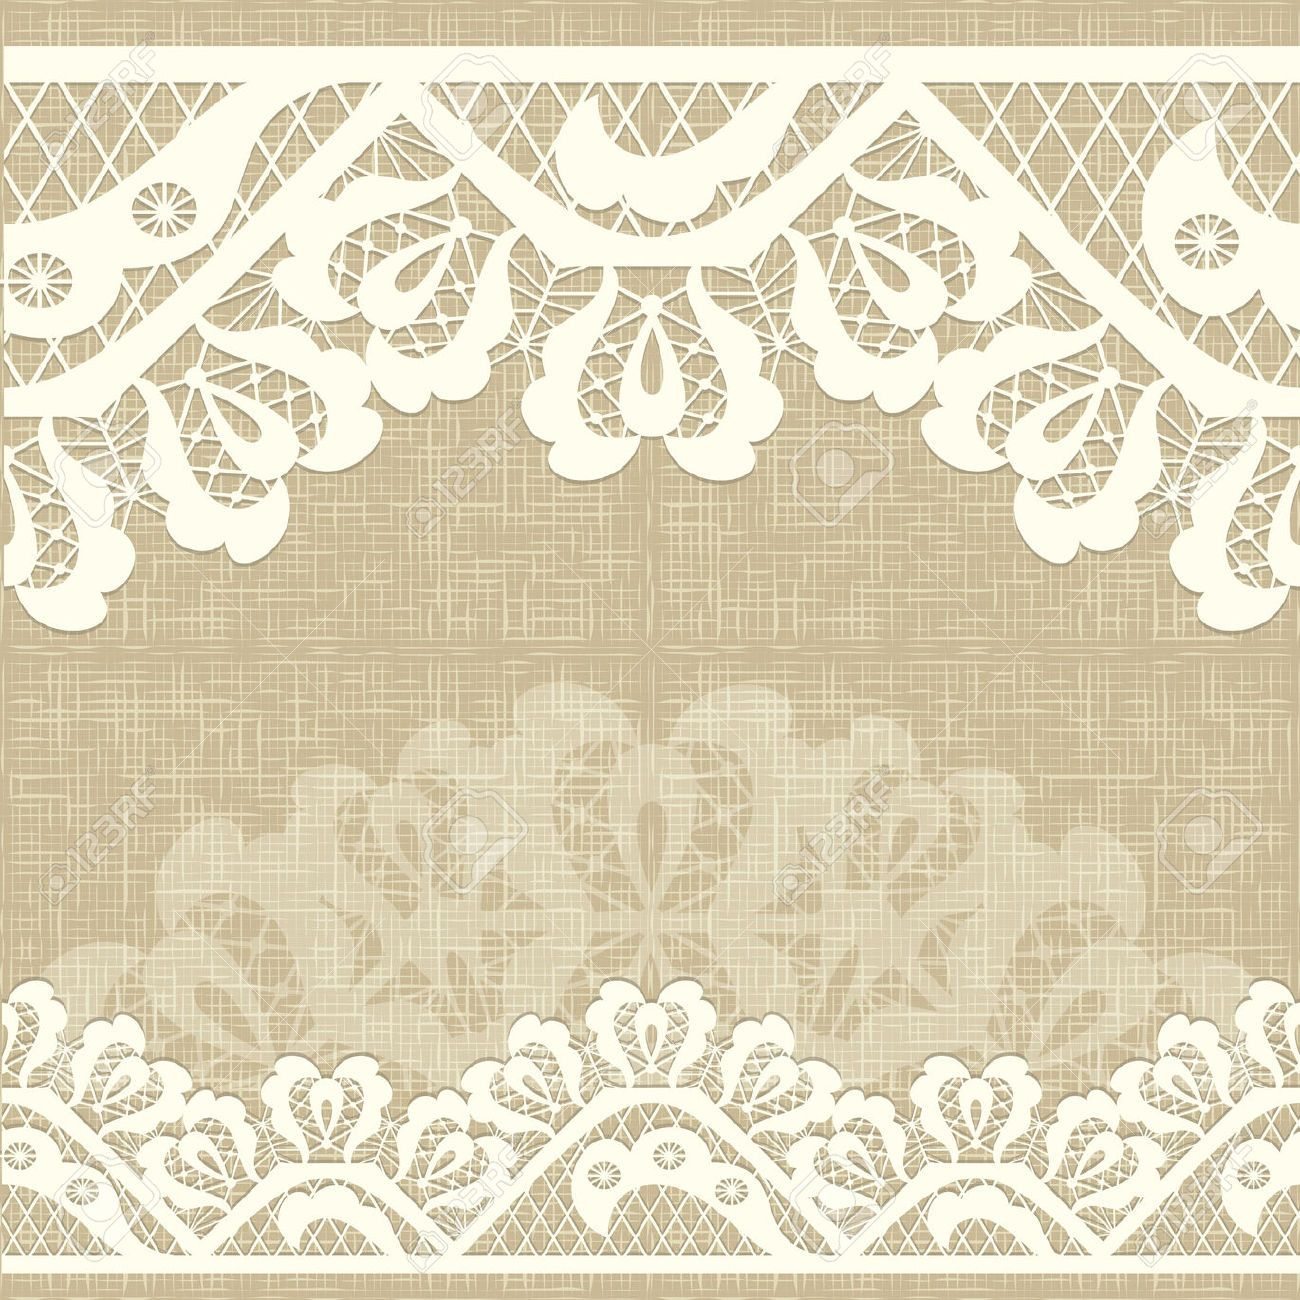 burlap and lace background - Google Search | wedding expo ...